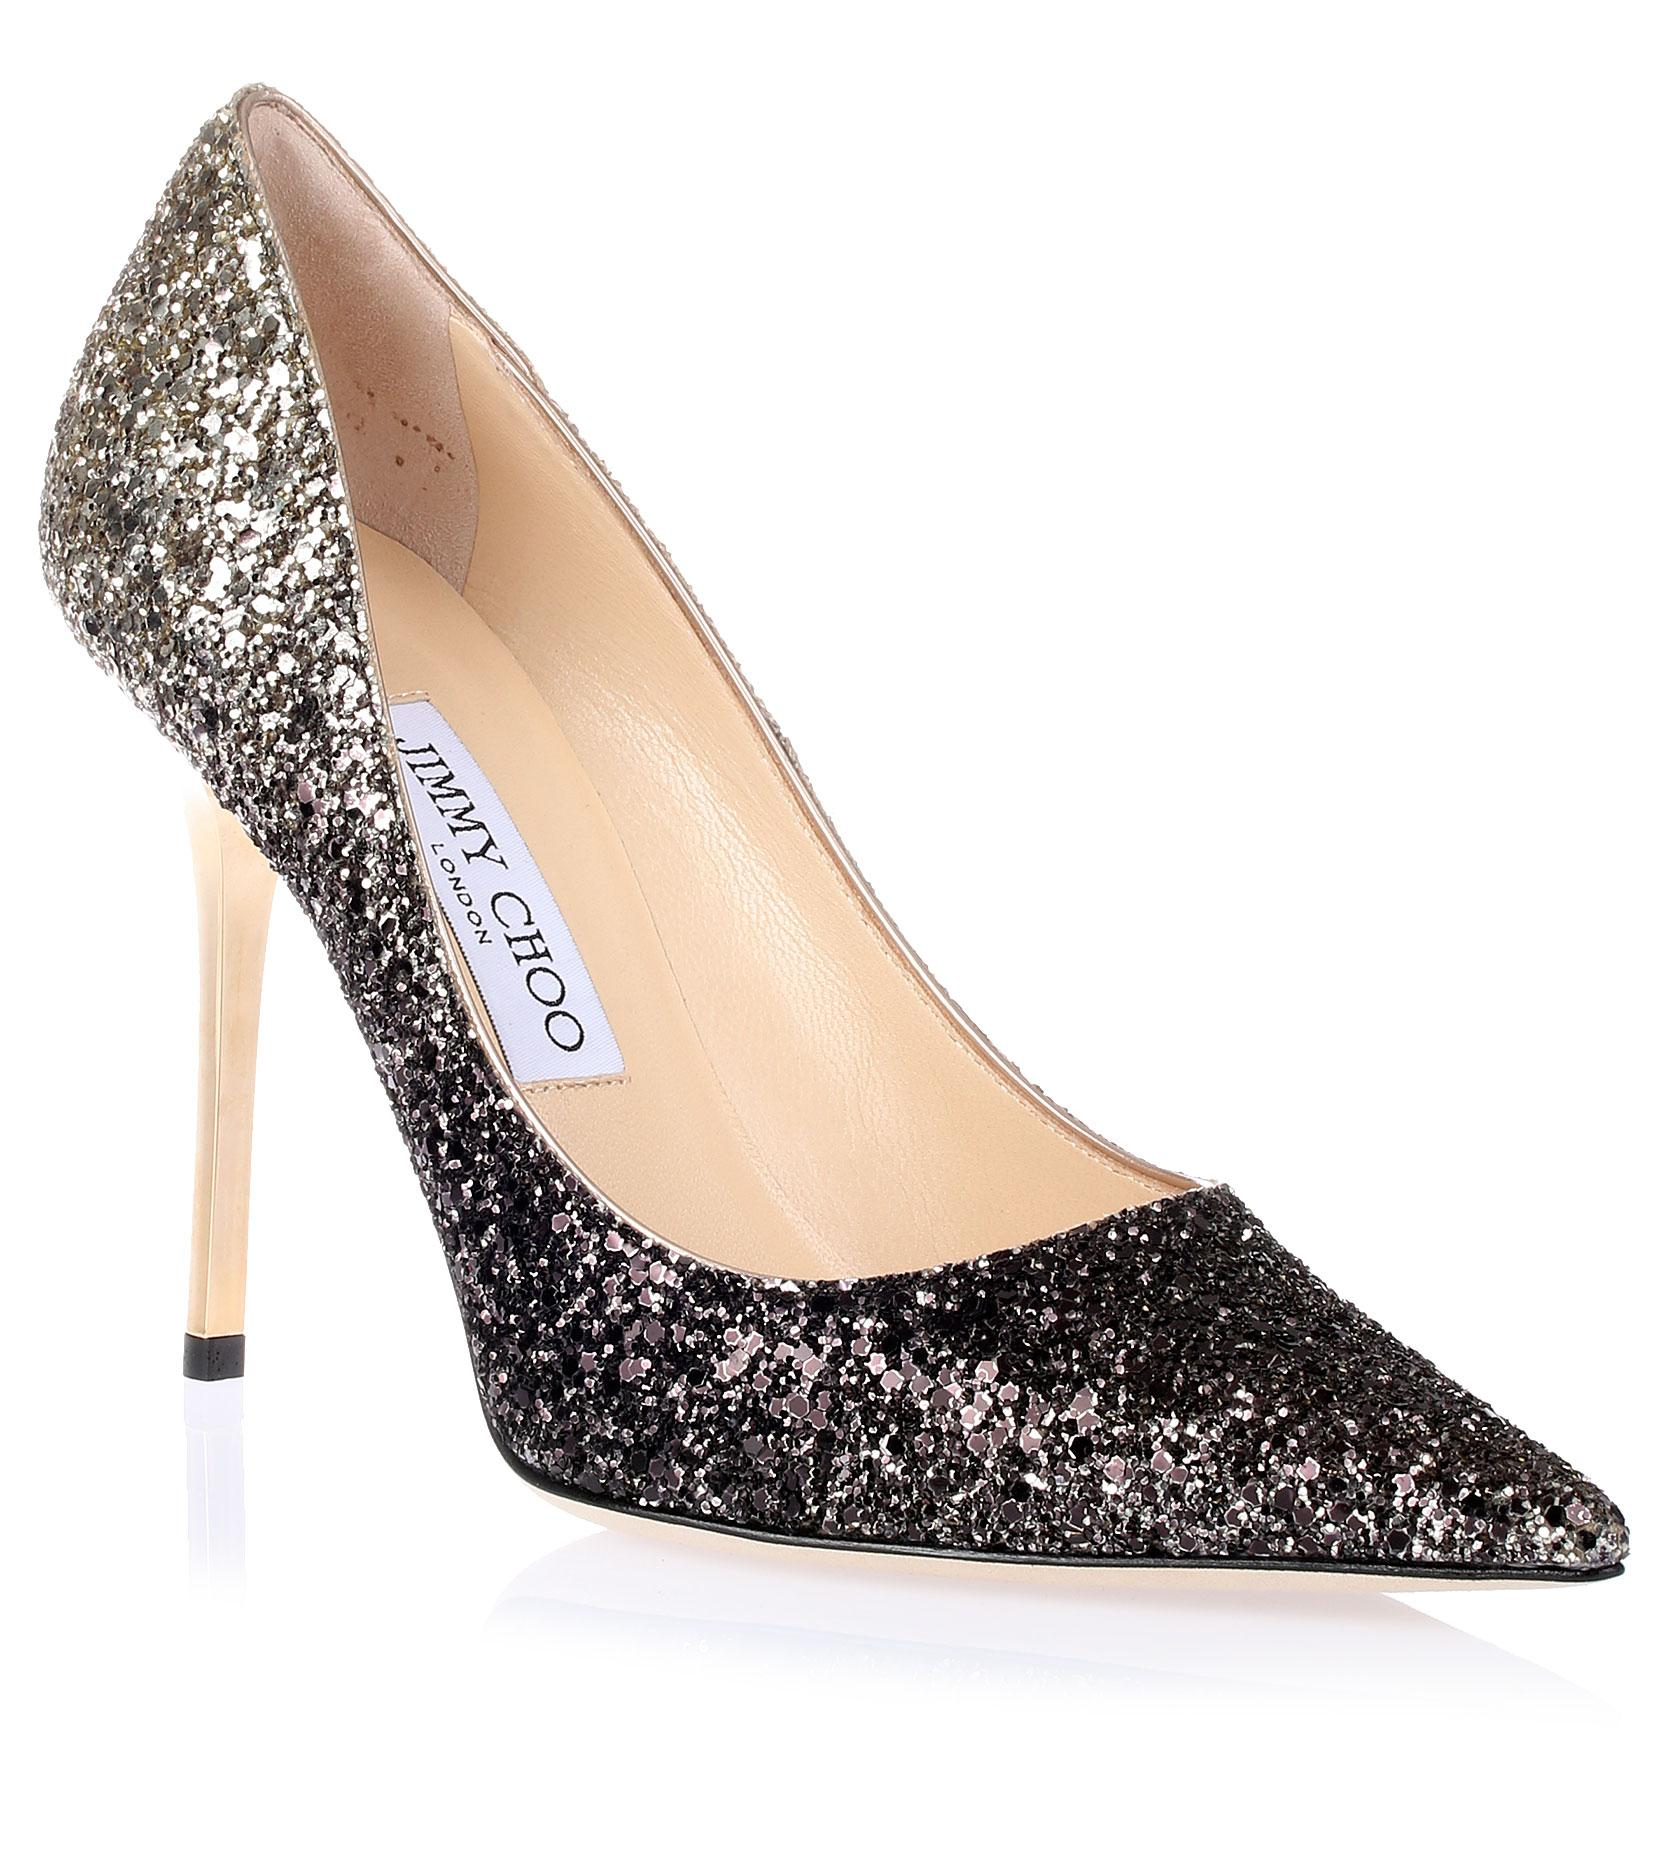 7293d40bf0 ... store jimmy choo ombre glitter abel pointed toe metallic black gold  pumps 74030 1d0f2